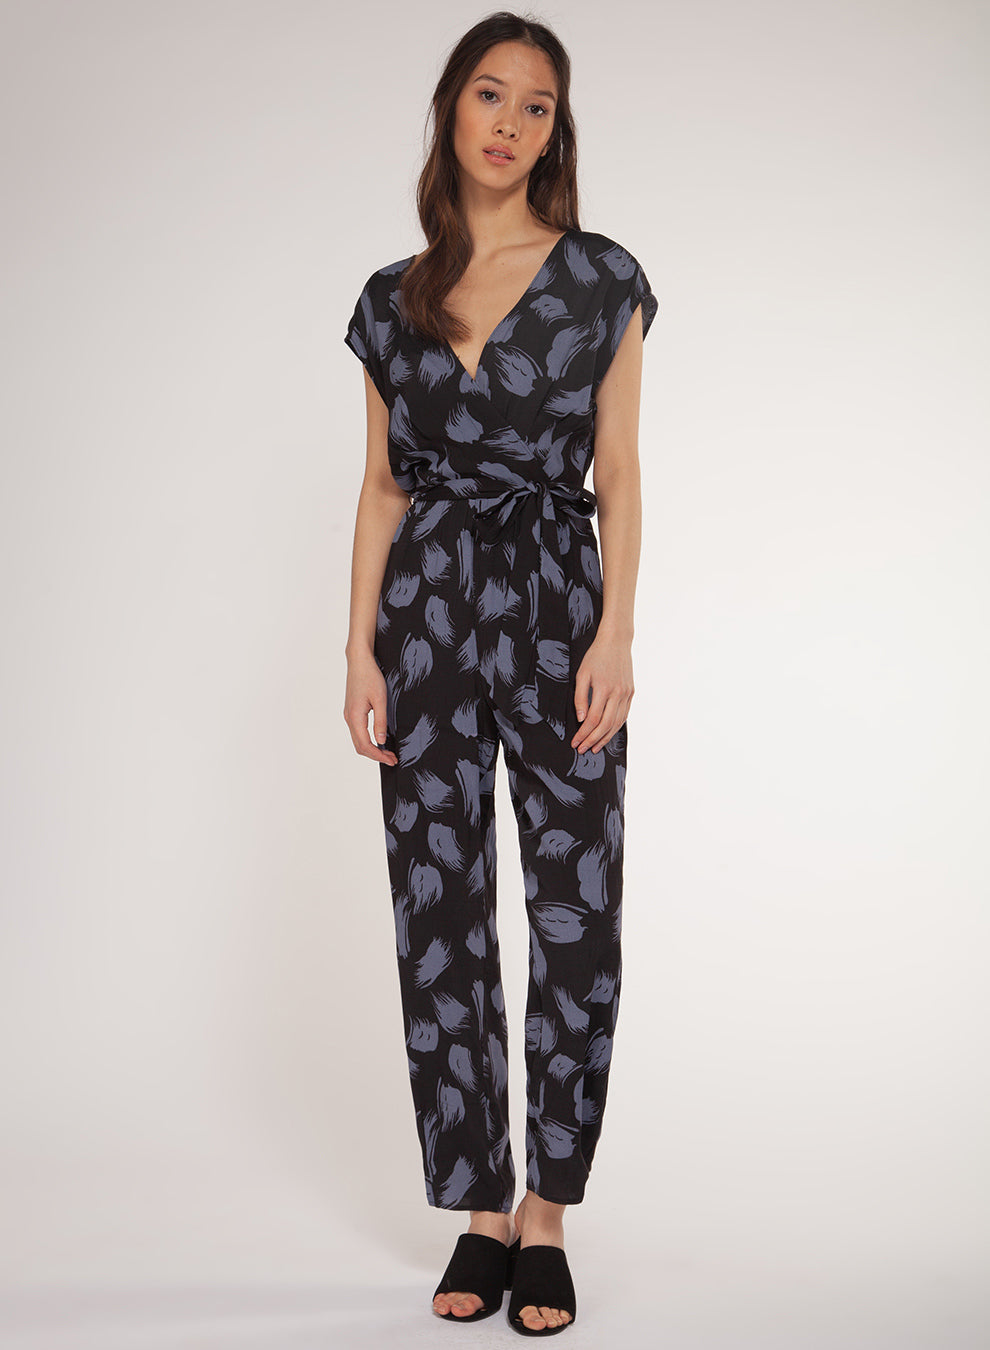 CAP SLEEVED JUMPSUIT W/ FAUX WRAP TOP- BLACK & BLUE FEATHER